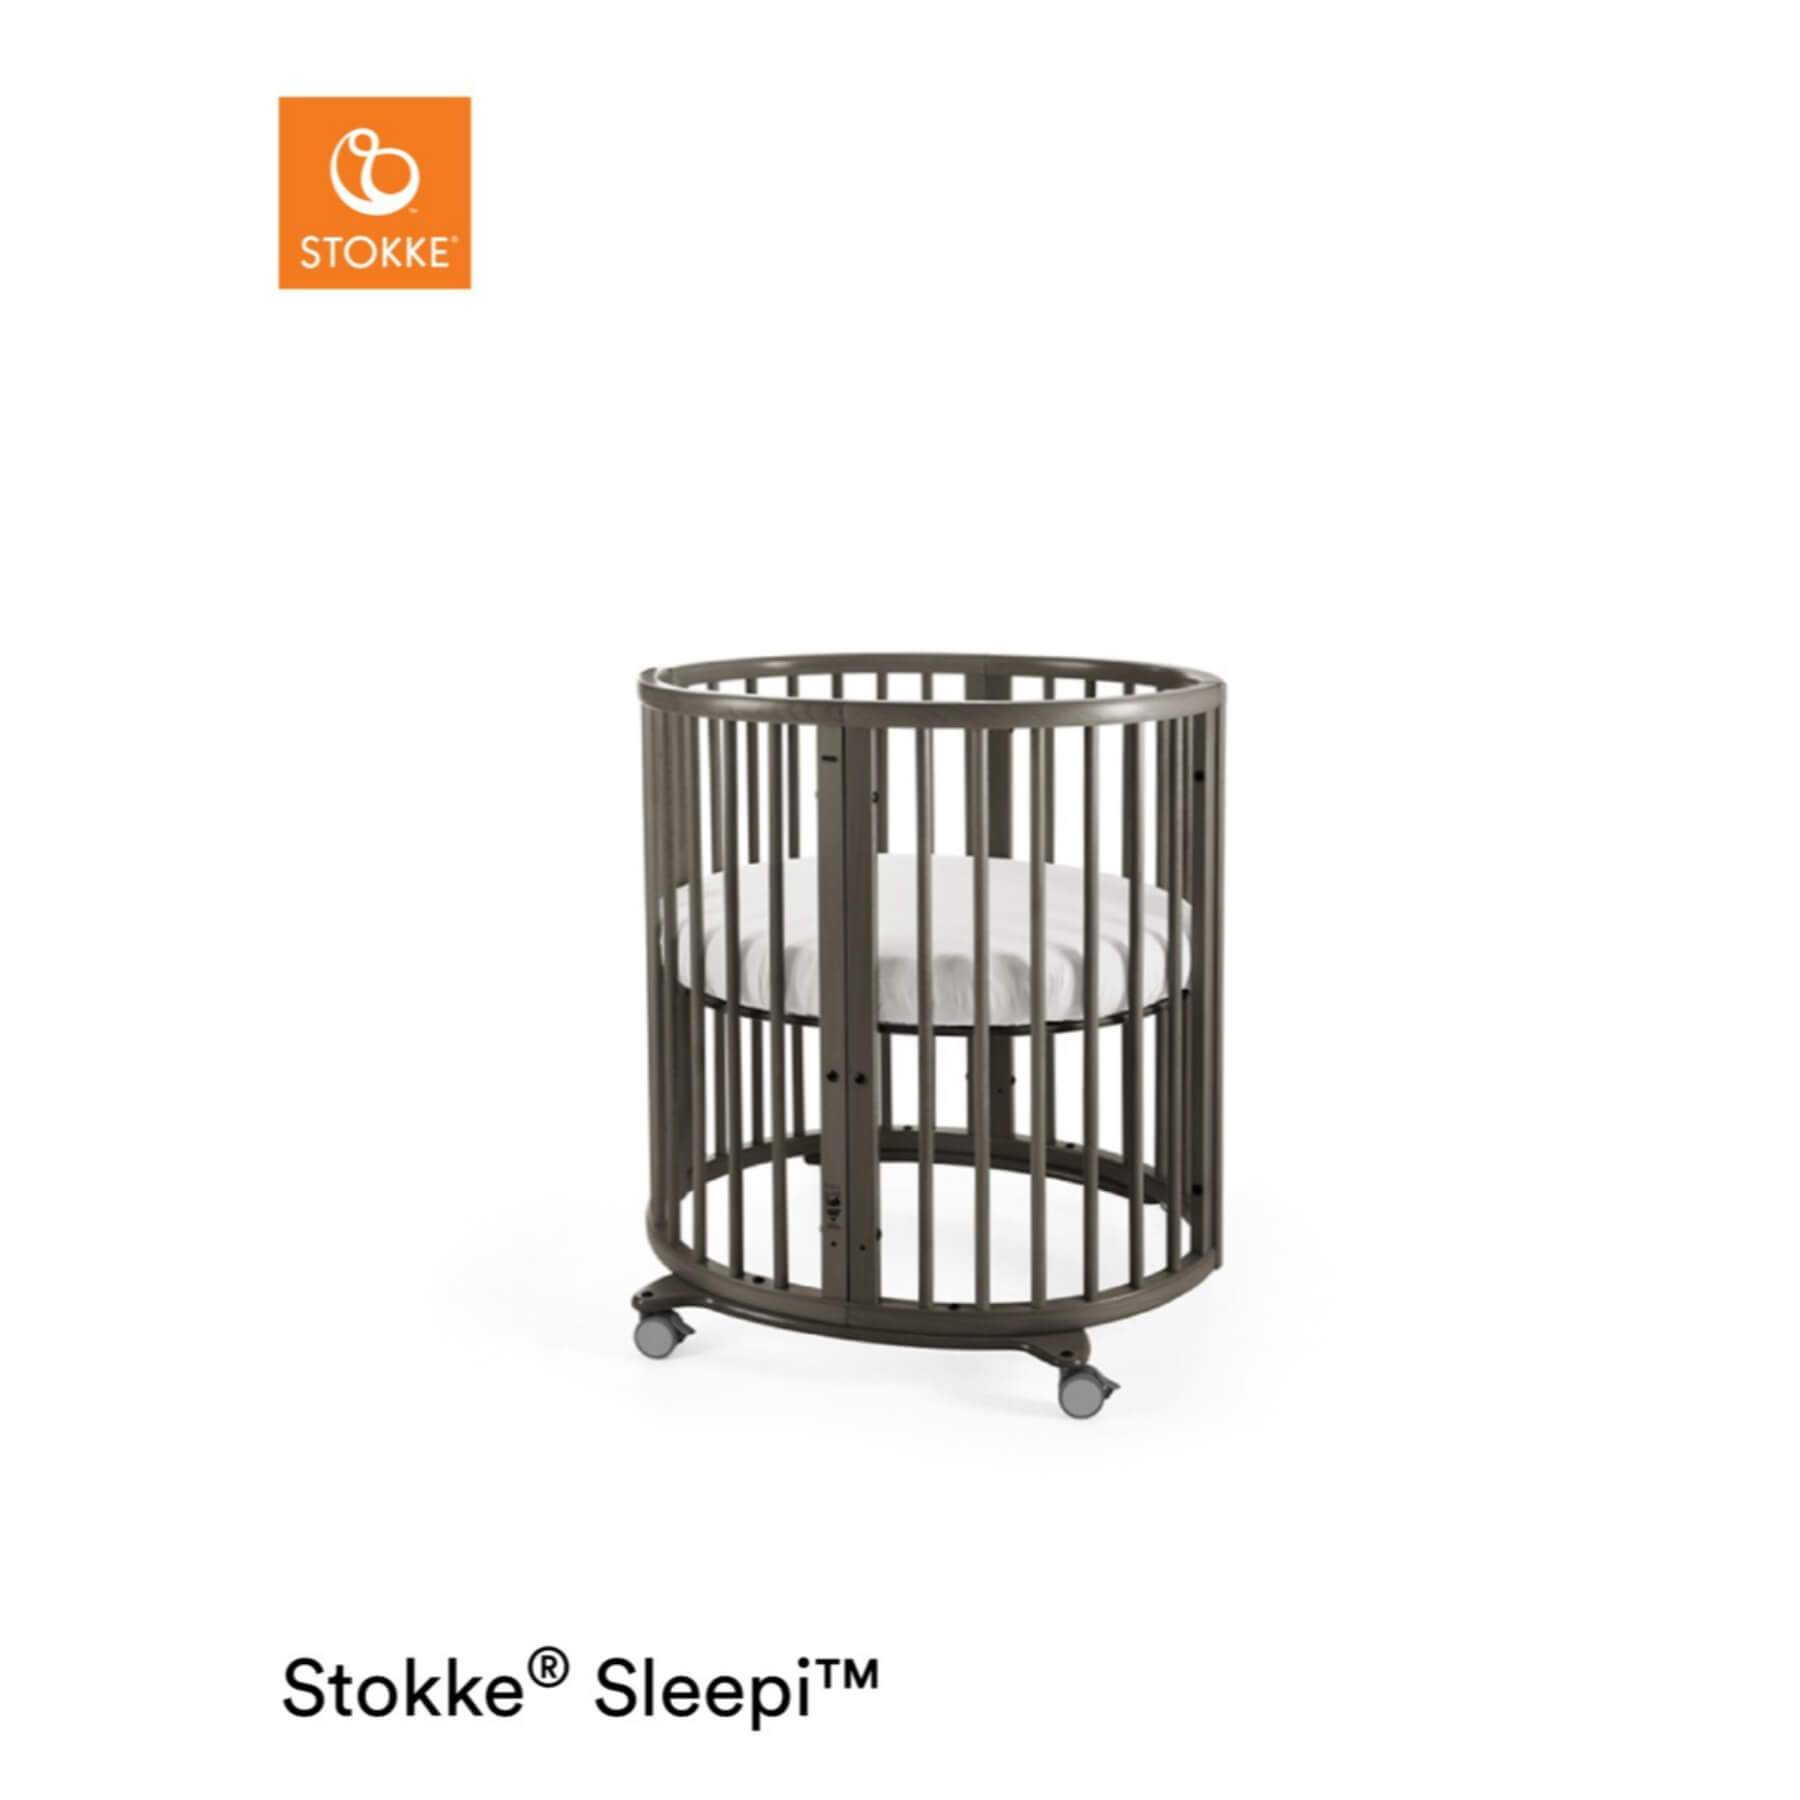 Stokke Sleepi Mini Crib - Hazy Grey